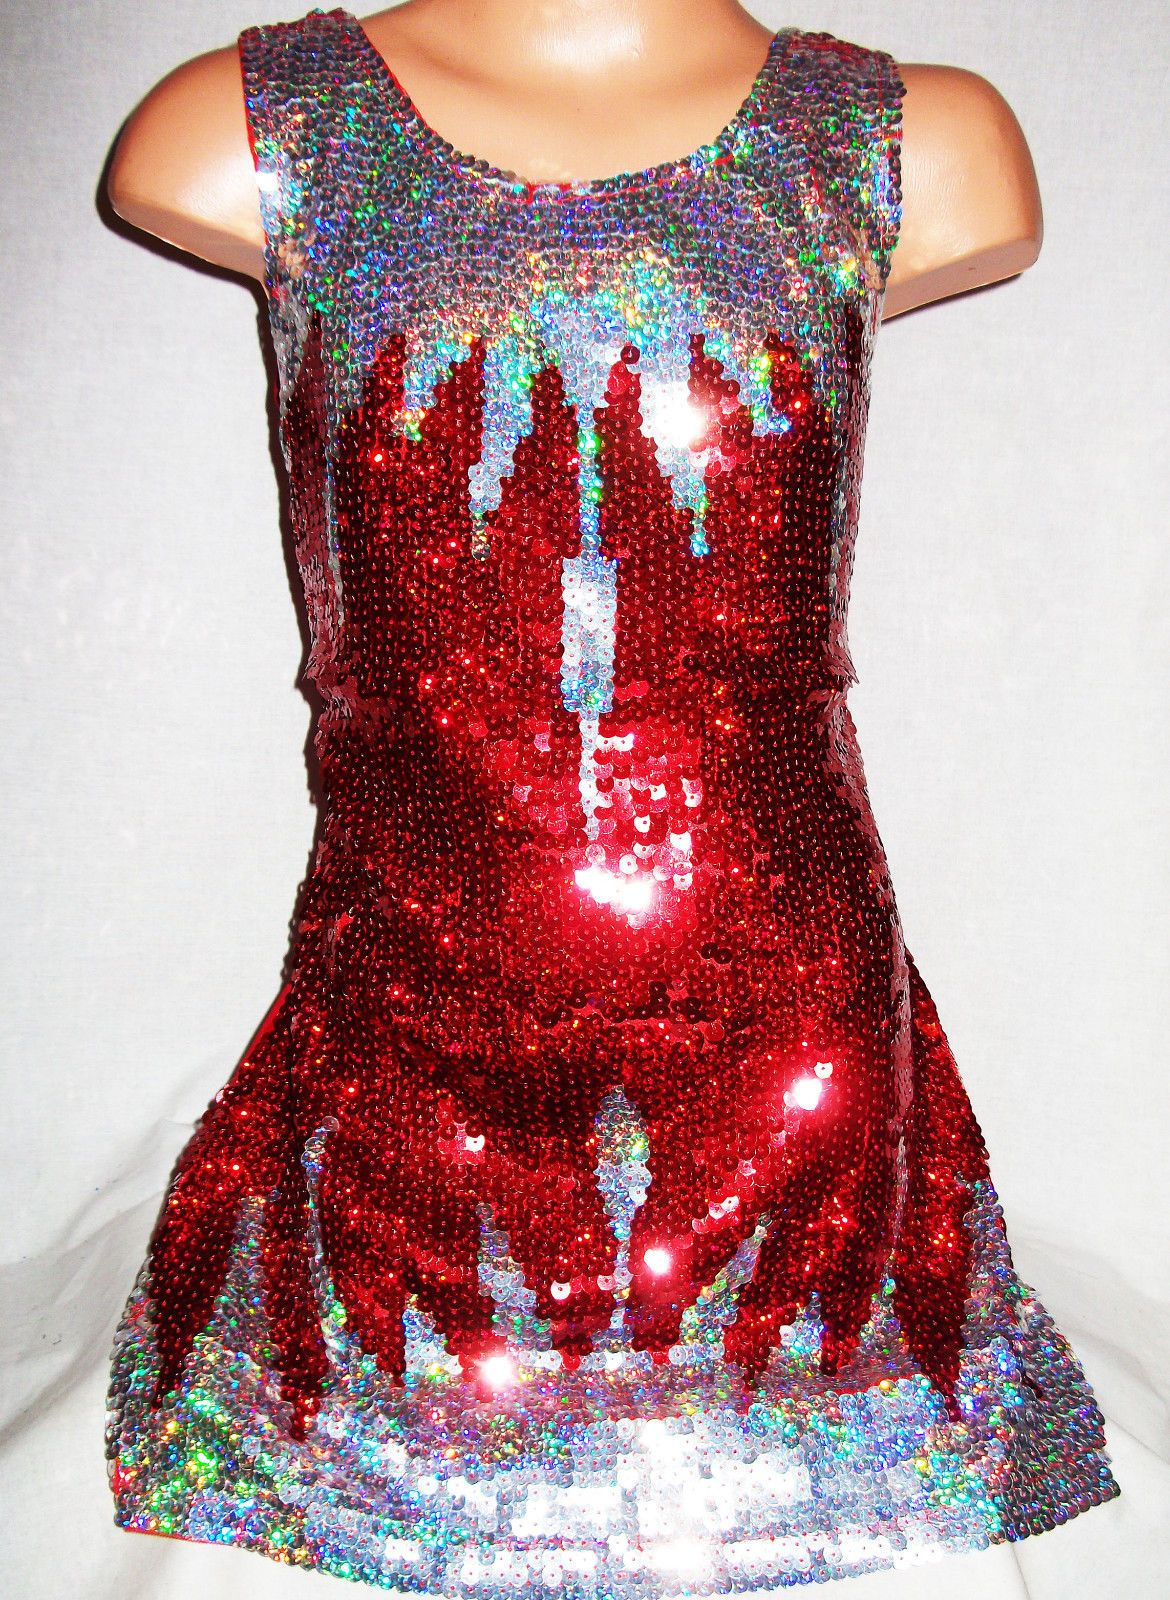 Girls s style red silver icicle pattern sequin evening dance party